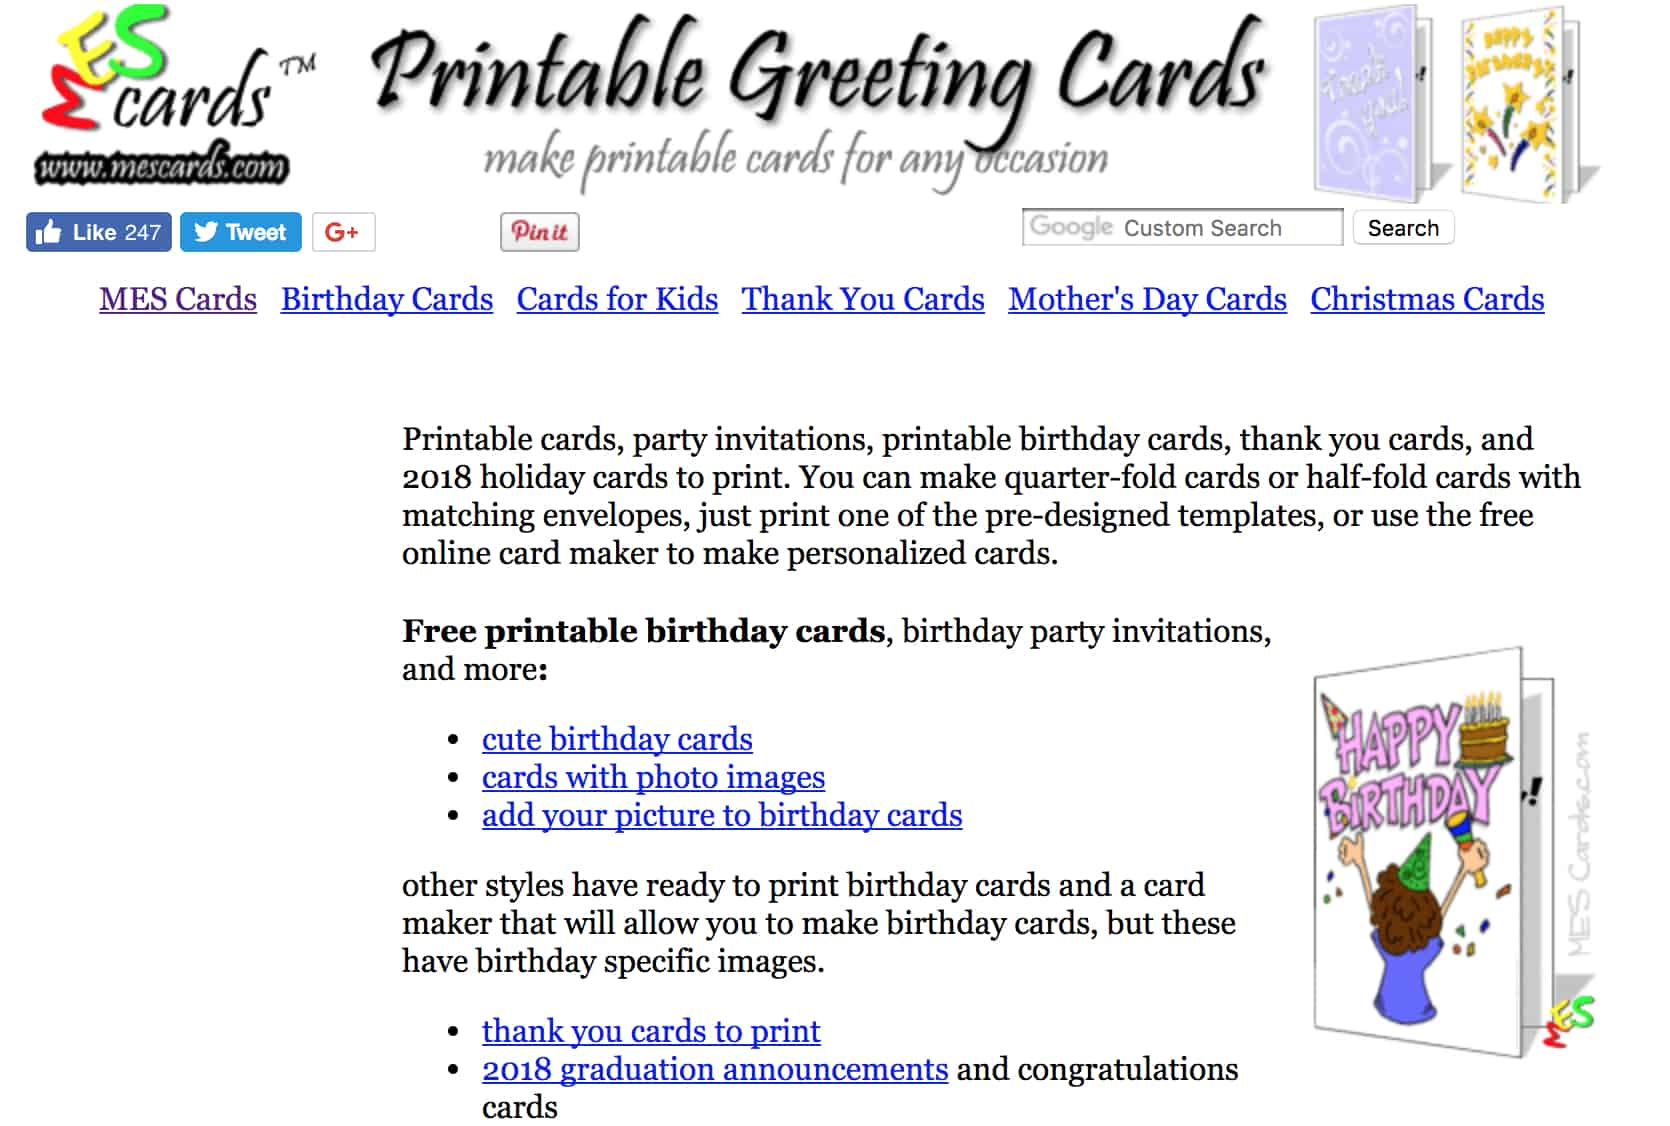 Online places to design free printable invitation cards templates the best thing about this website is that it have some online printable birthday card templates which you can edit and download according to your needs kristyandbryce Image collections